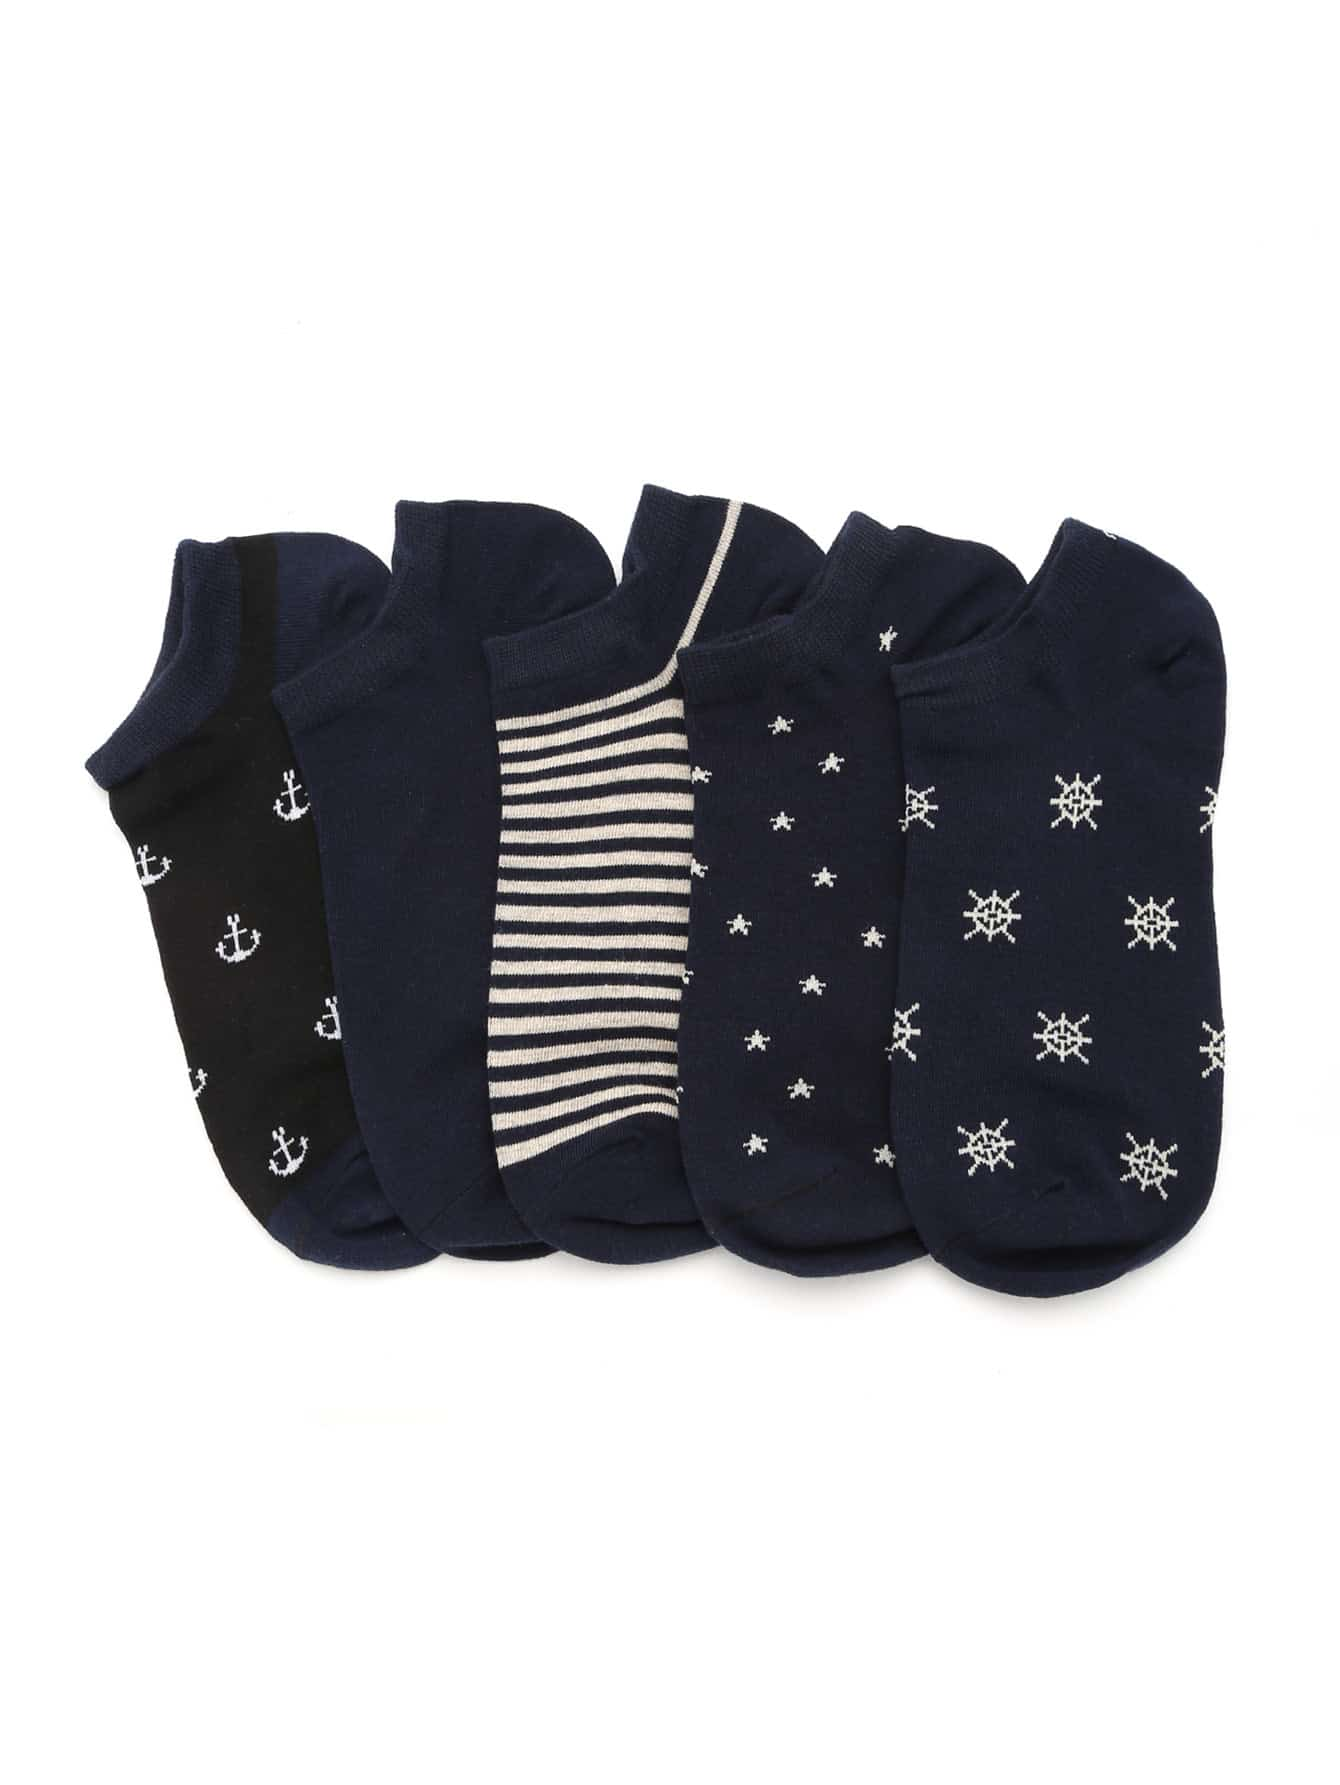 Rudder Print Invisible Socks 5 Pairs